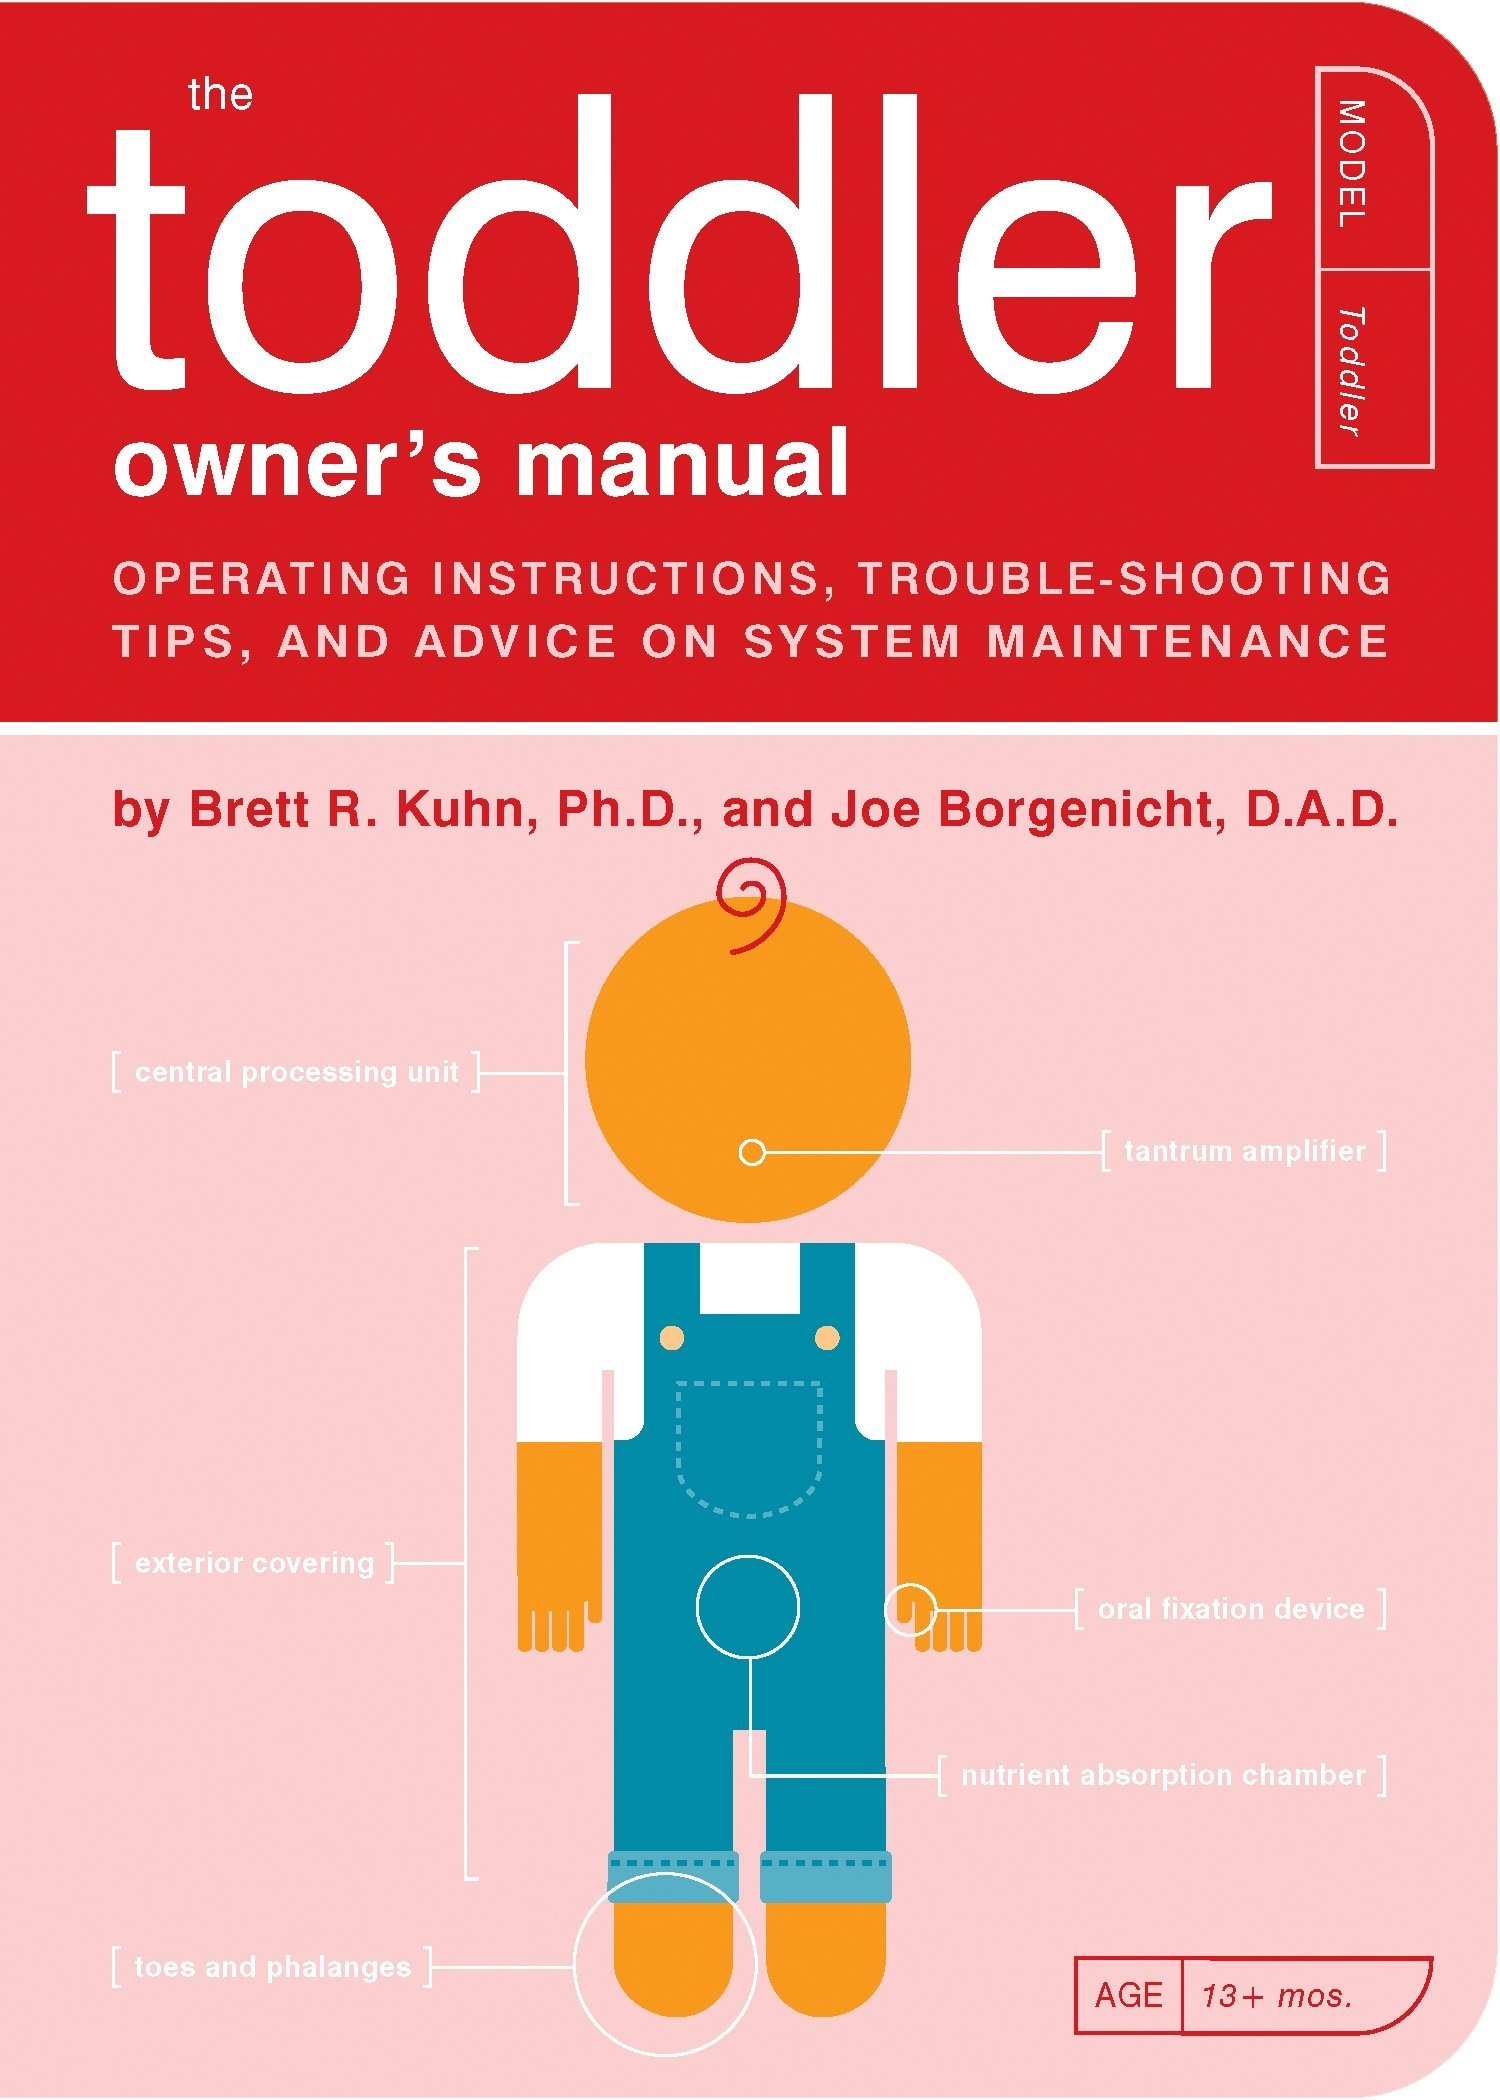 The Toddler Owner's Manual: Operating Instructions, Troubleshooting Tips,  and Advice on System Maintenance: Brett R. Kuhn Ph.D., Joe Borgenicht  D.A.D., ...